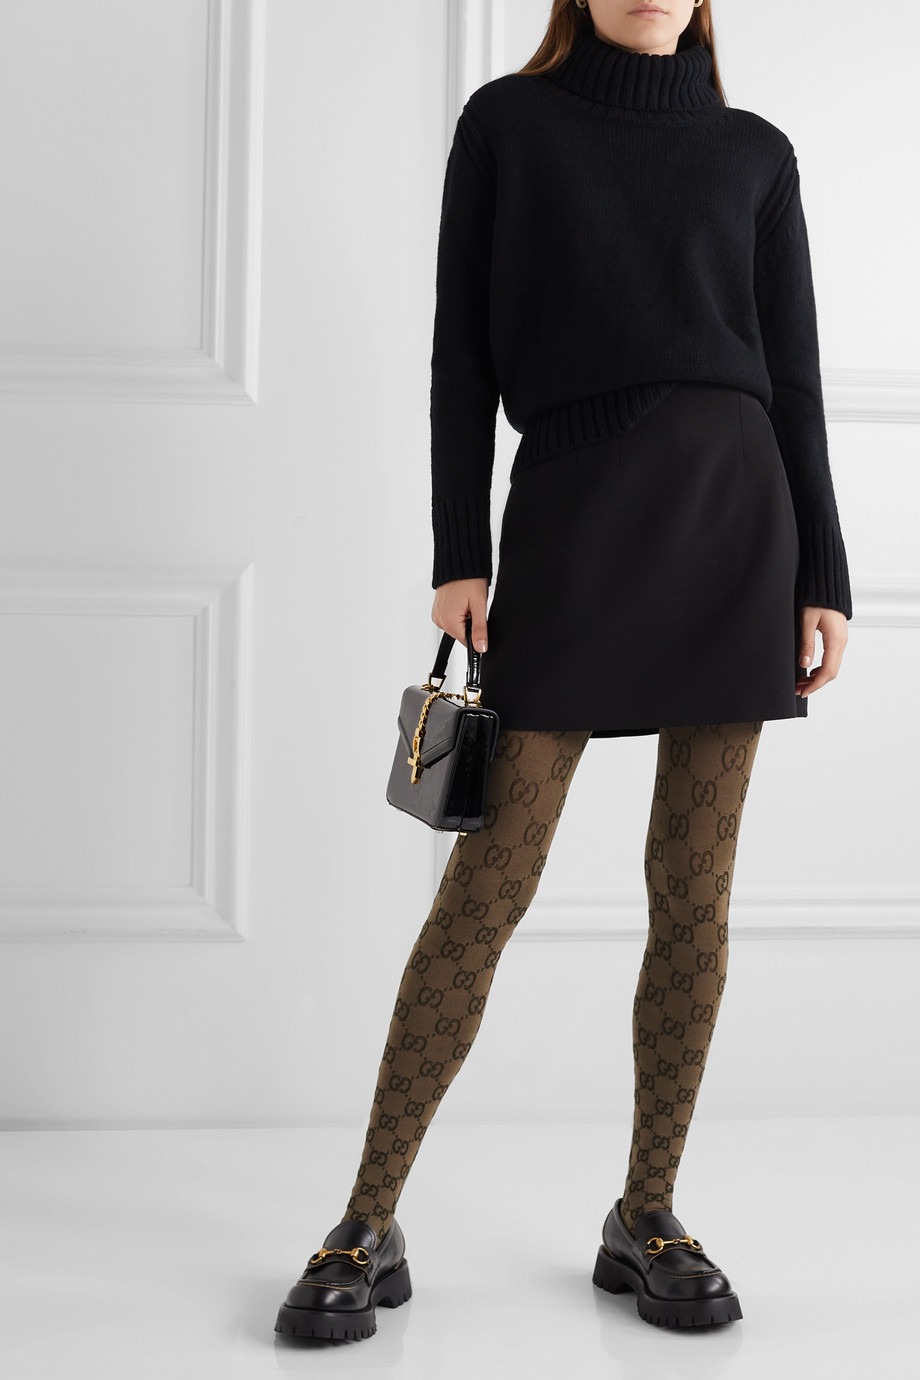 Gucci Jacquard-knit tights